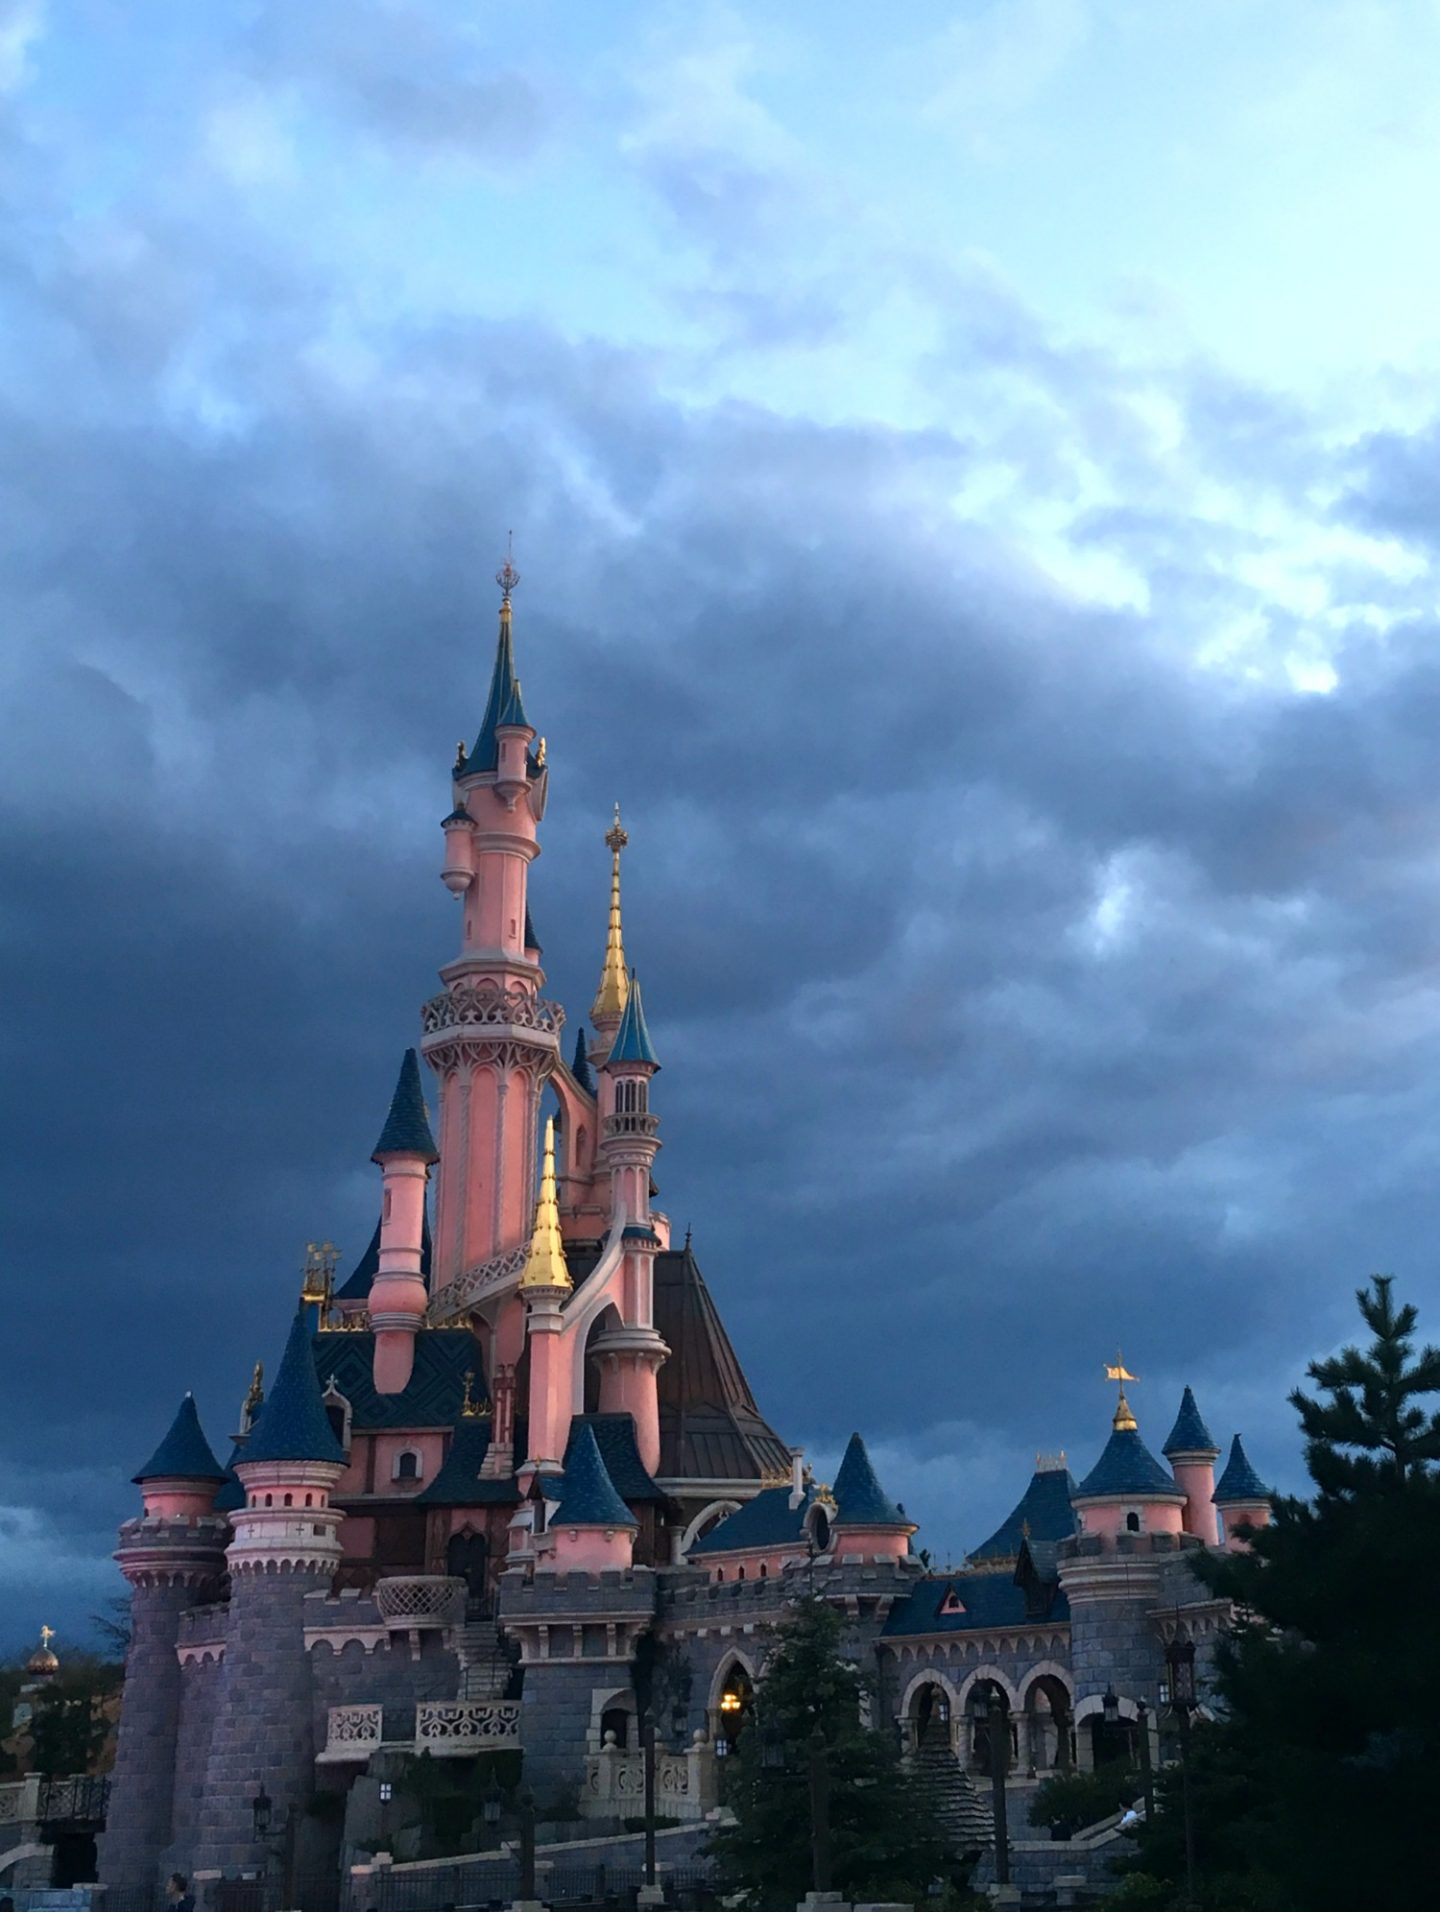 The castle at disneyland paris at night